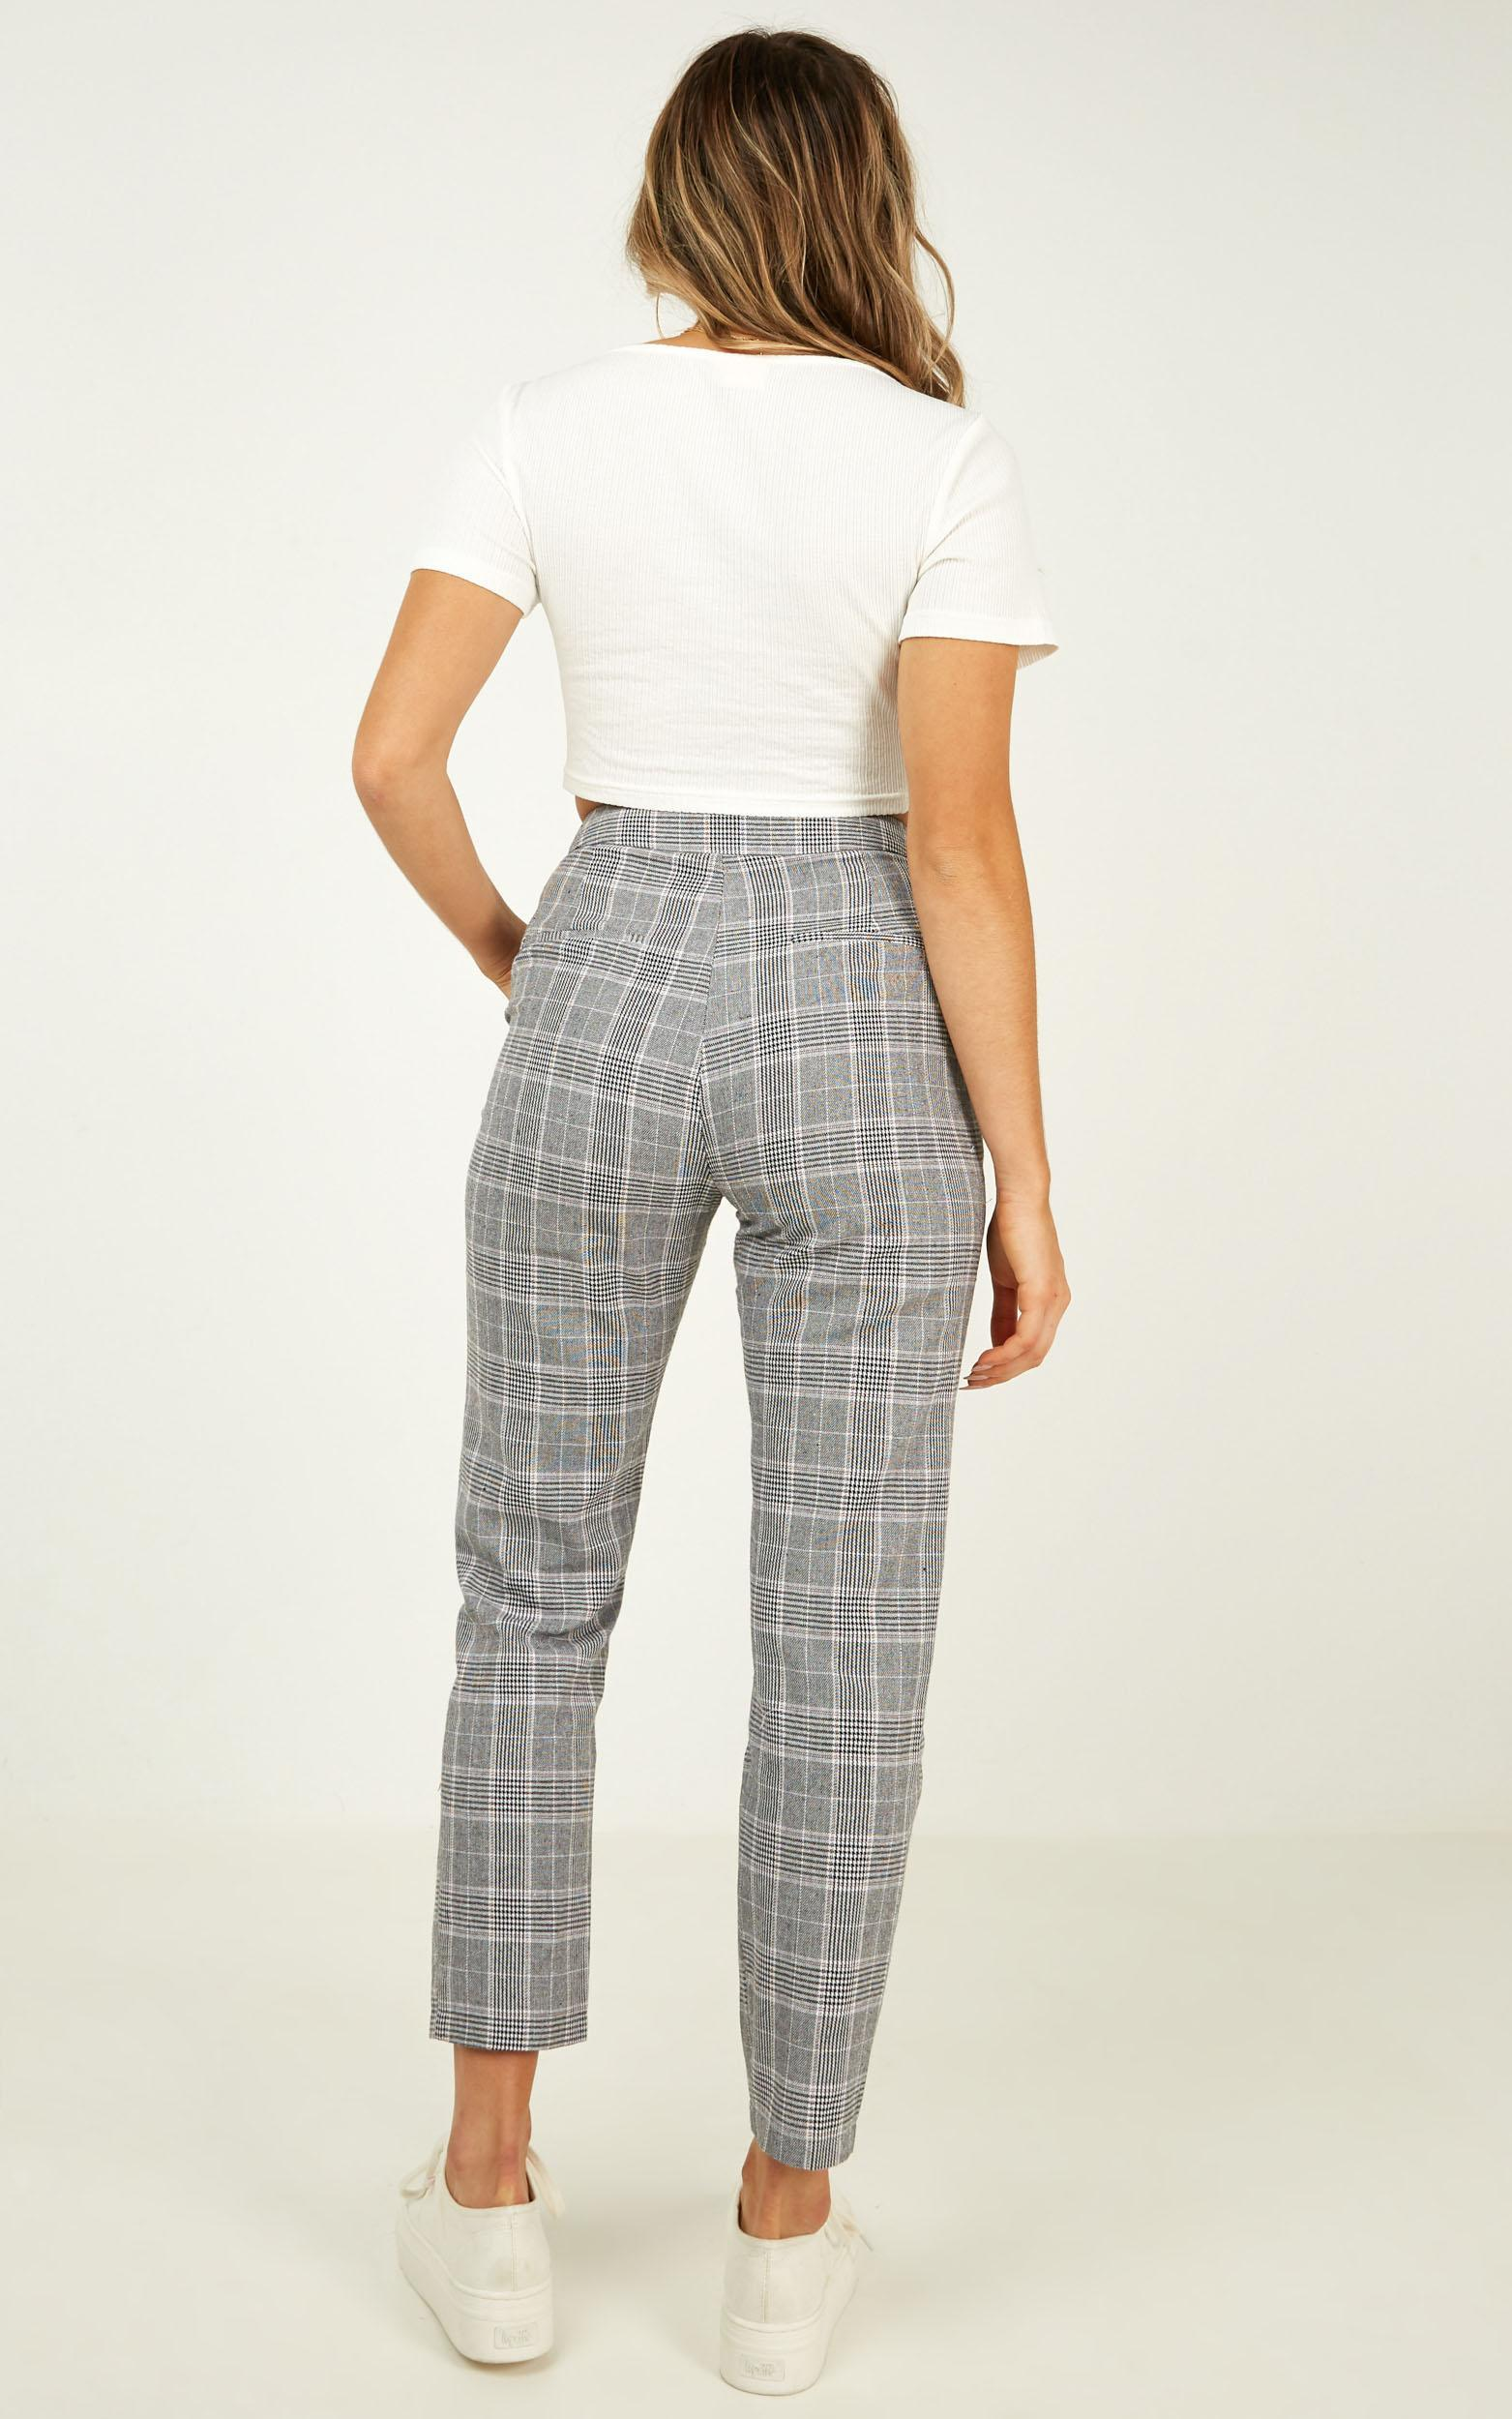 Roll Along Pants in grey check - 20 (XXXXL), Grey, hi-res image number null